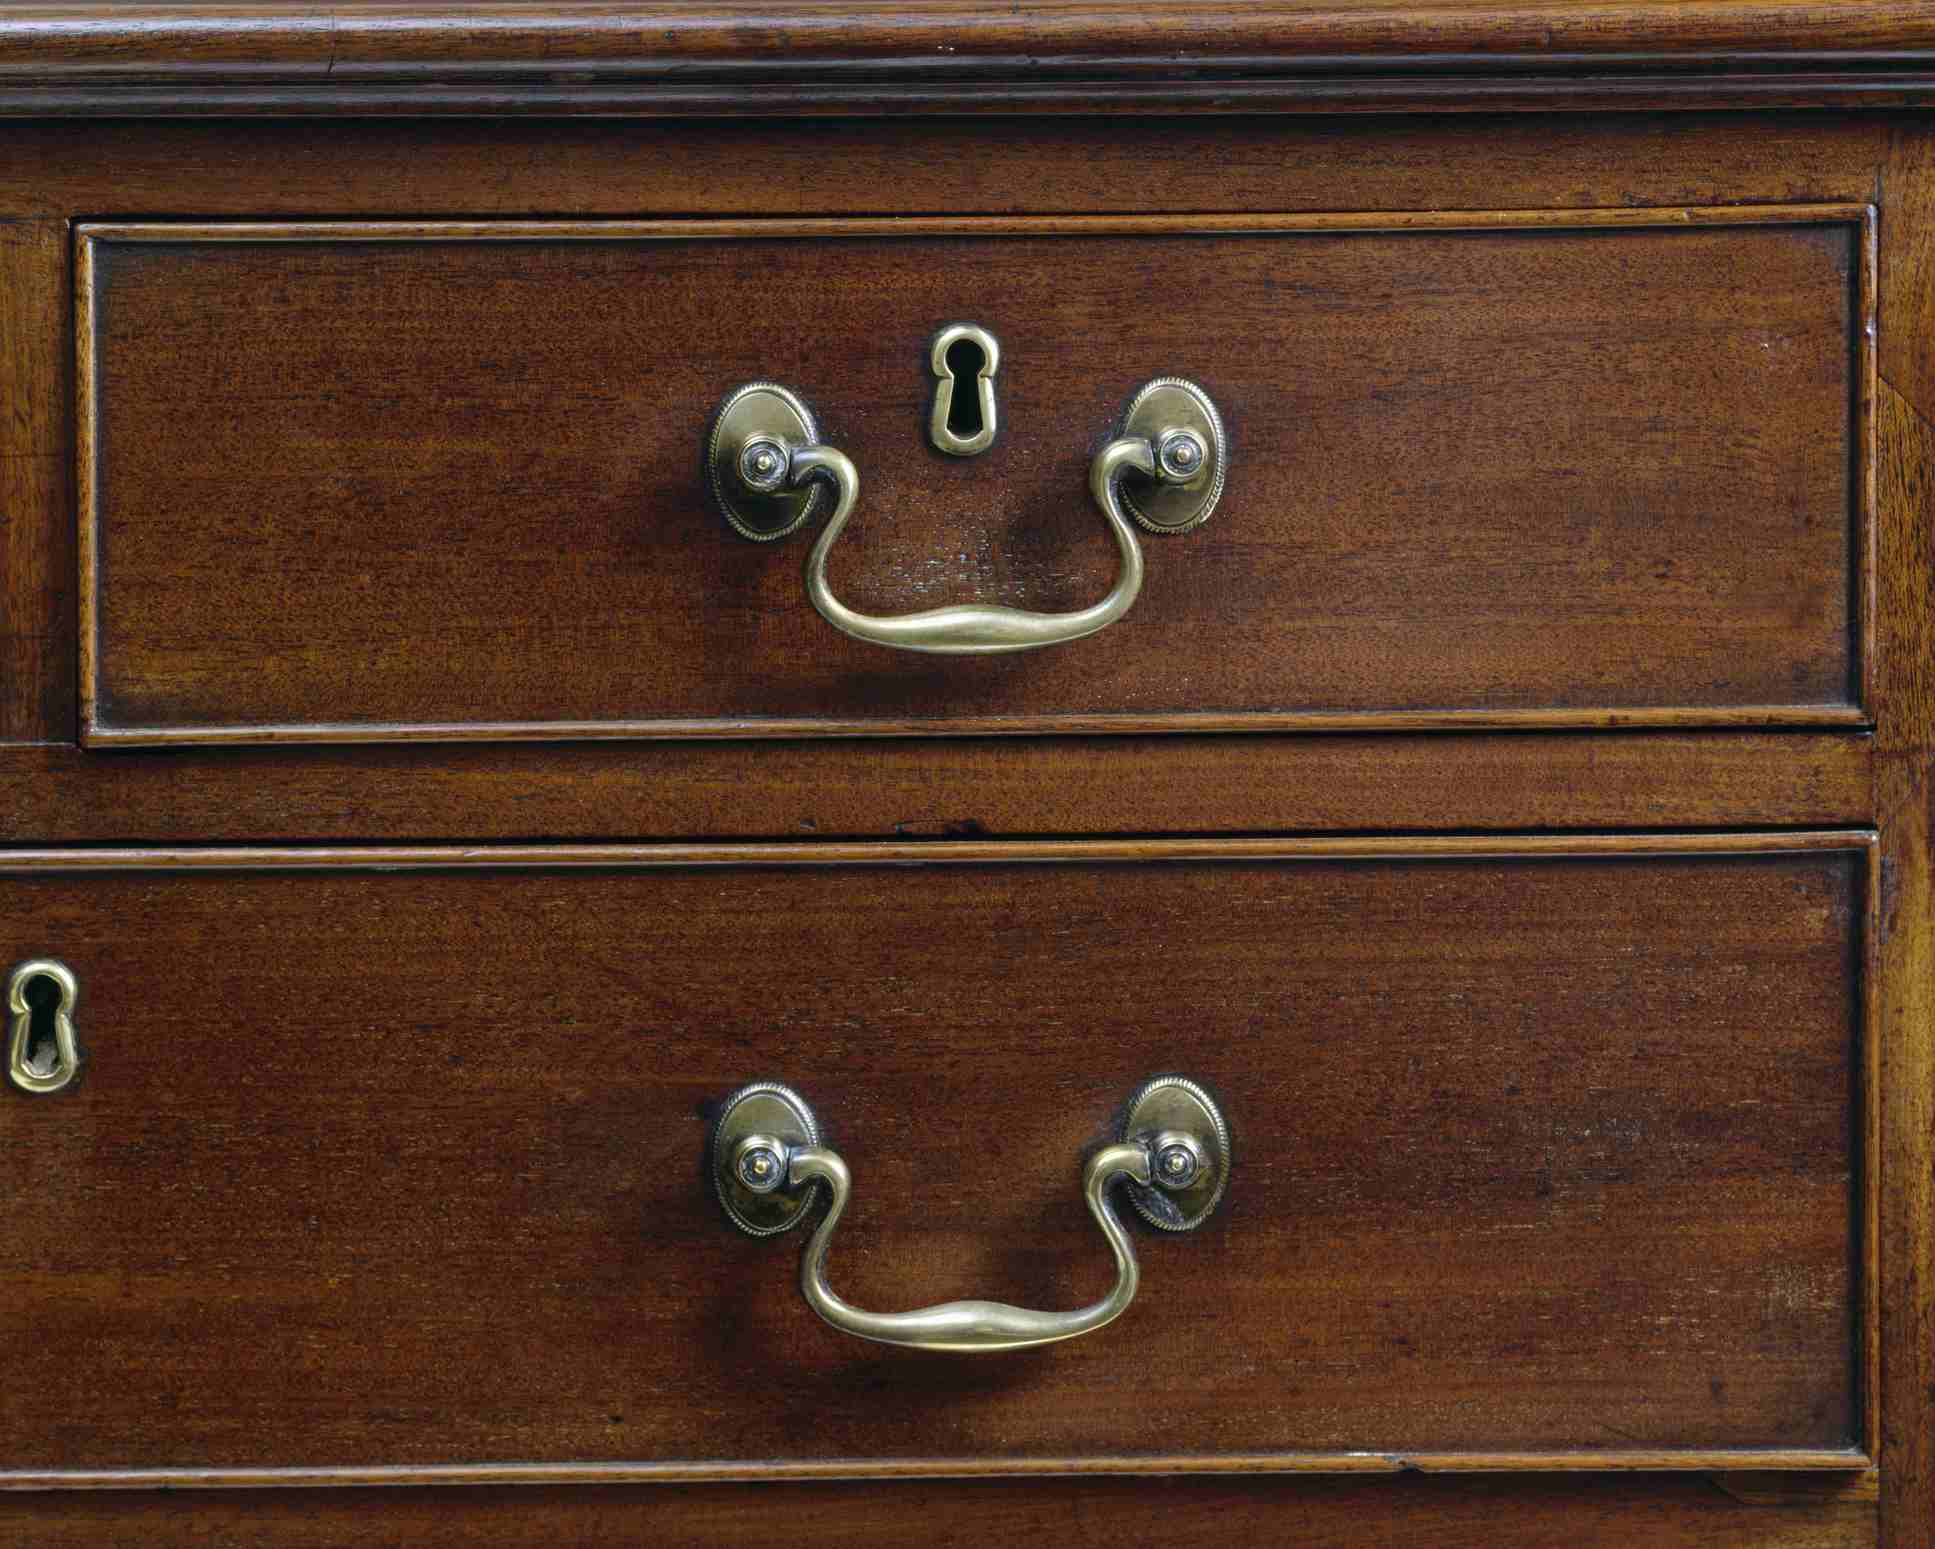 Chippendale drawer details